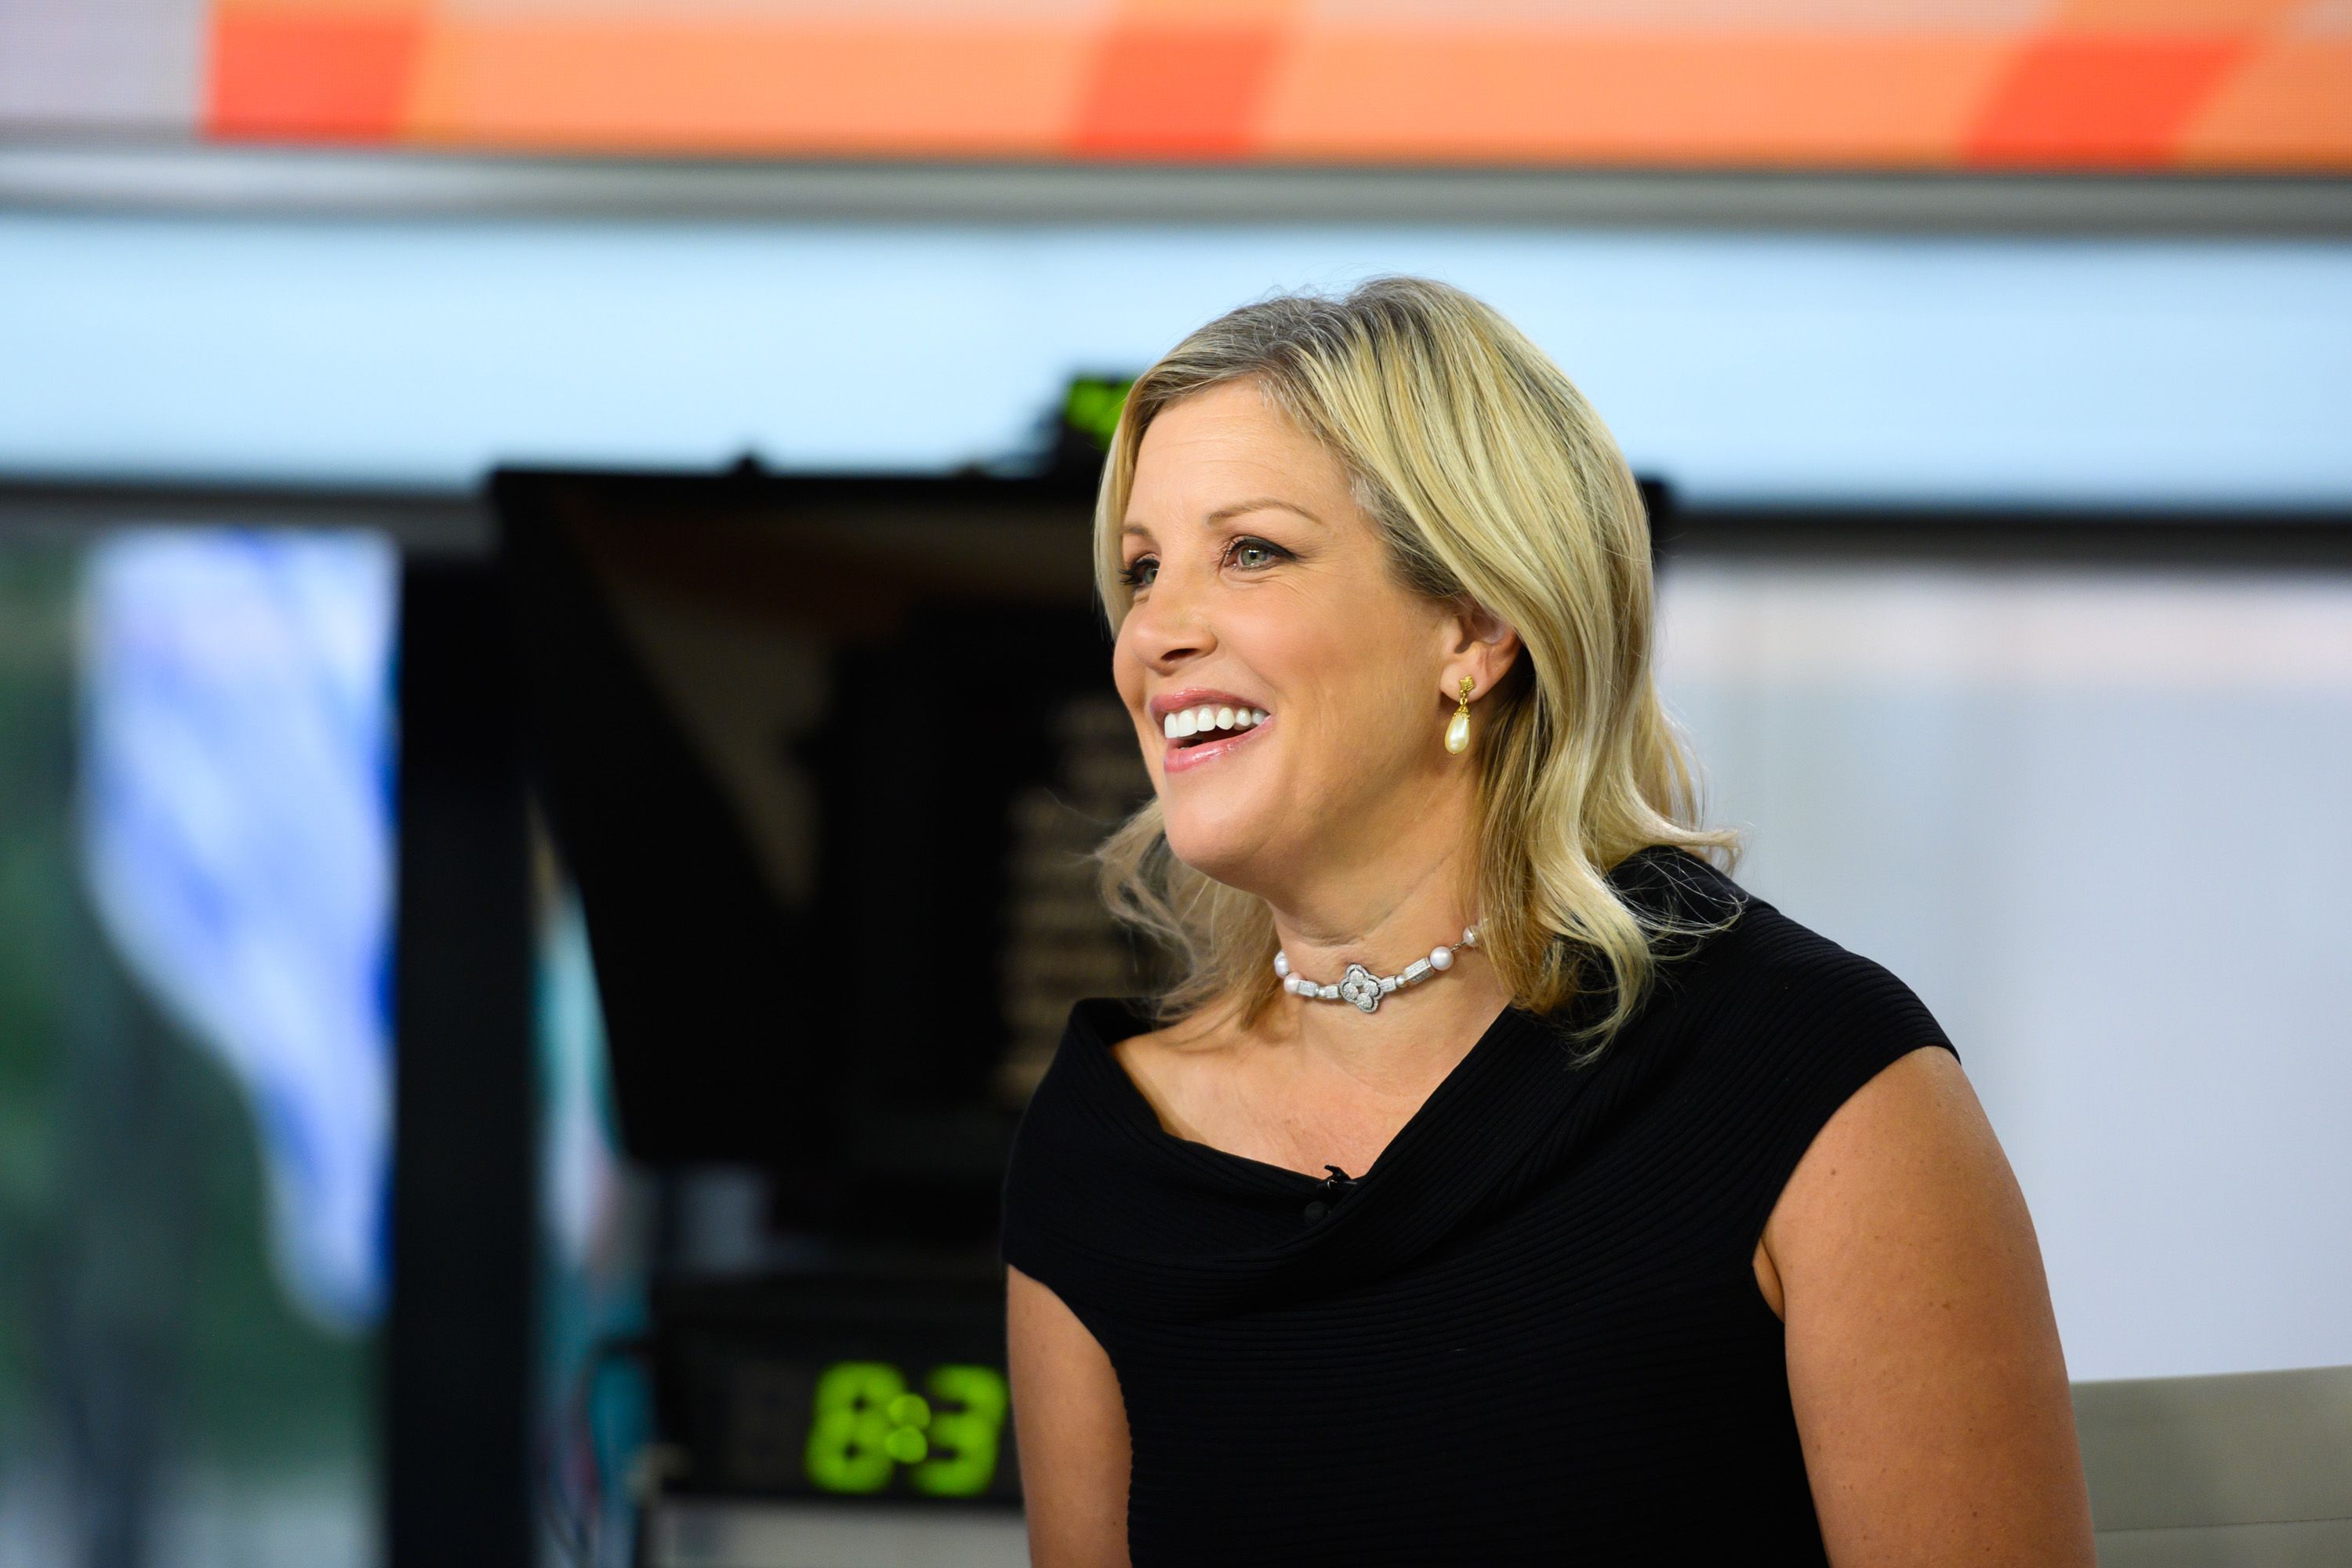 NBC's Kristen Dahlgren Almost Ignored the Breast Cancer Symptom That Led to Her Diagnosis